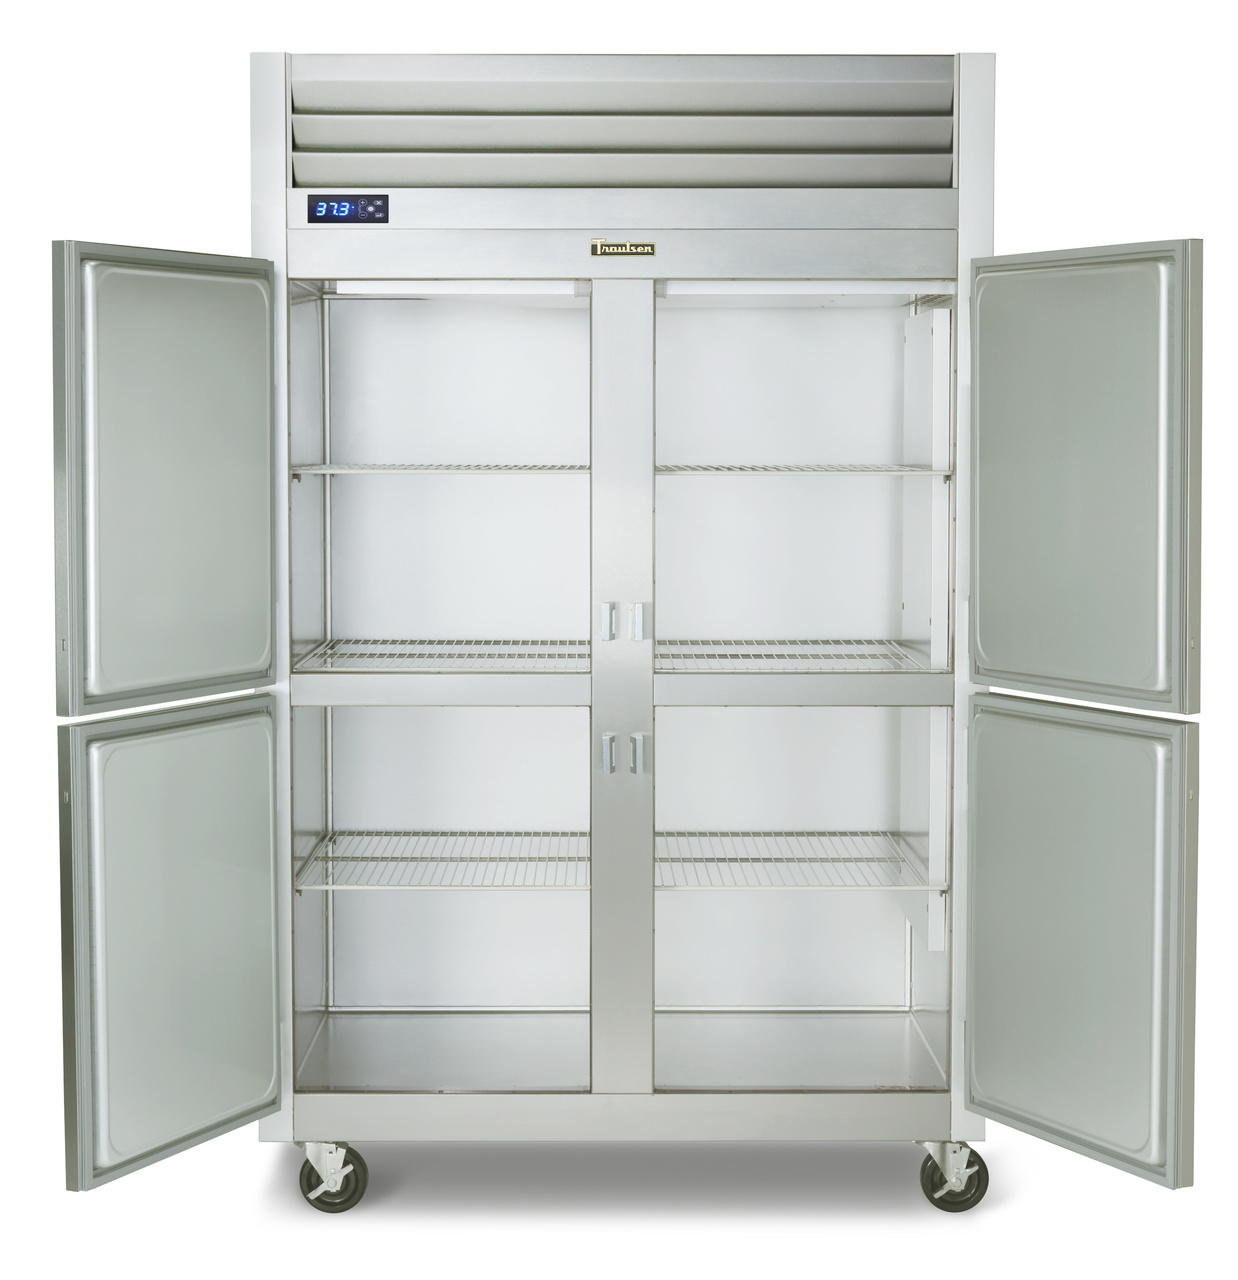 G-Series Commercial Refrigerators | Traulsen on